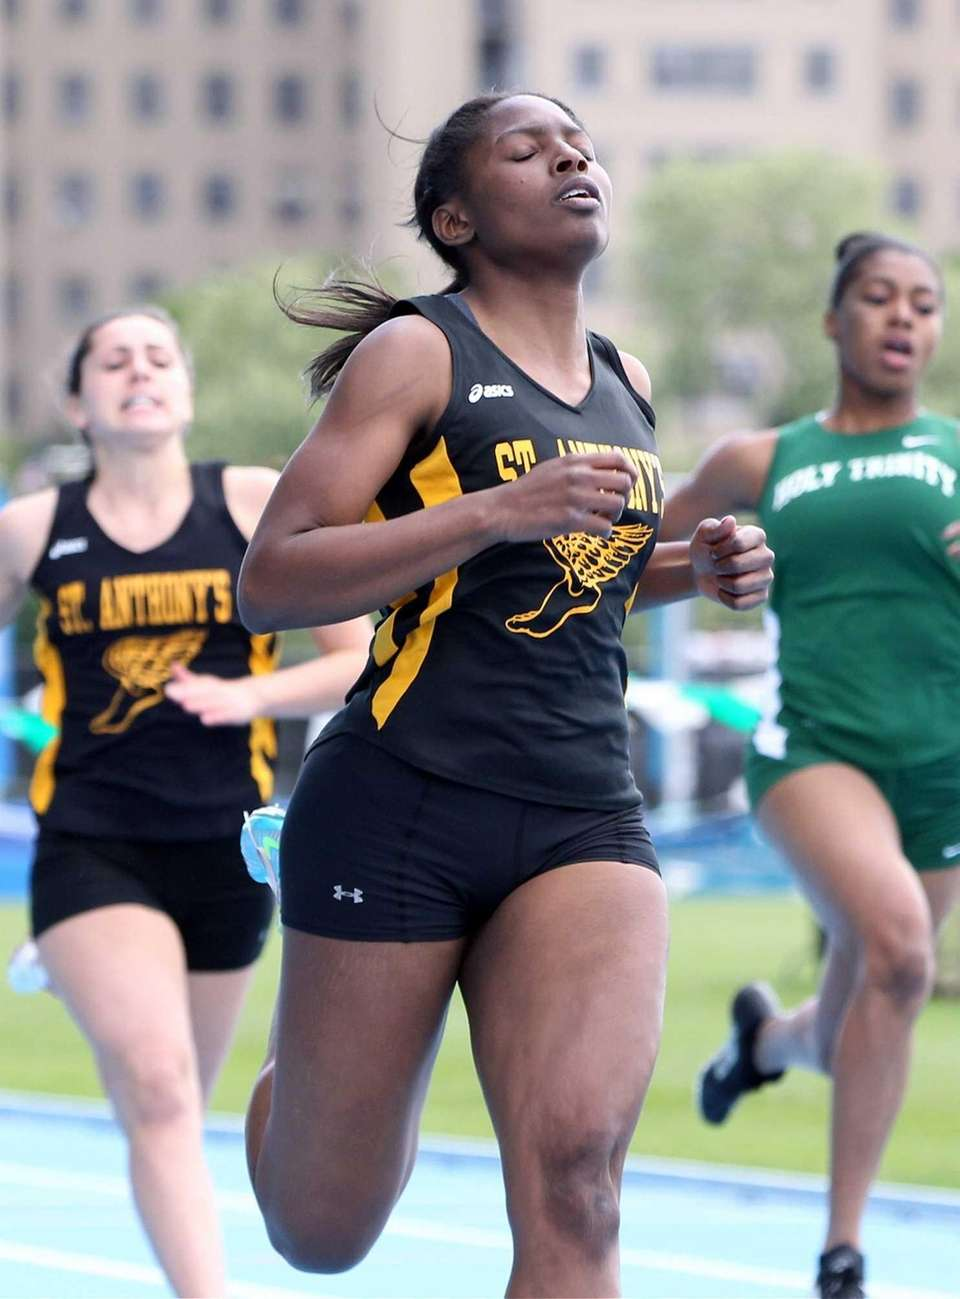 St. Anthony's Melissa June wins the 100m at